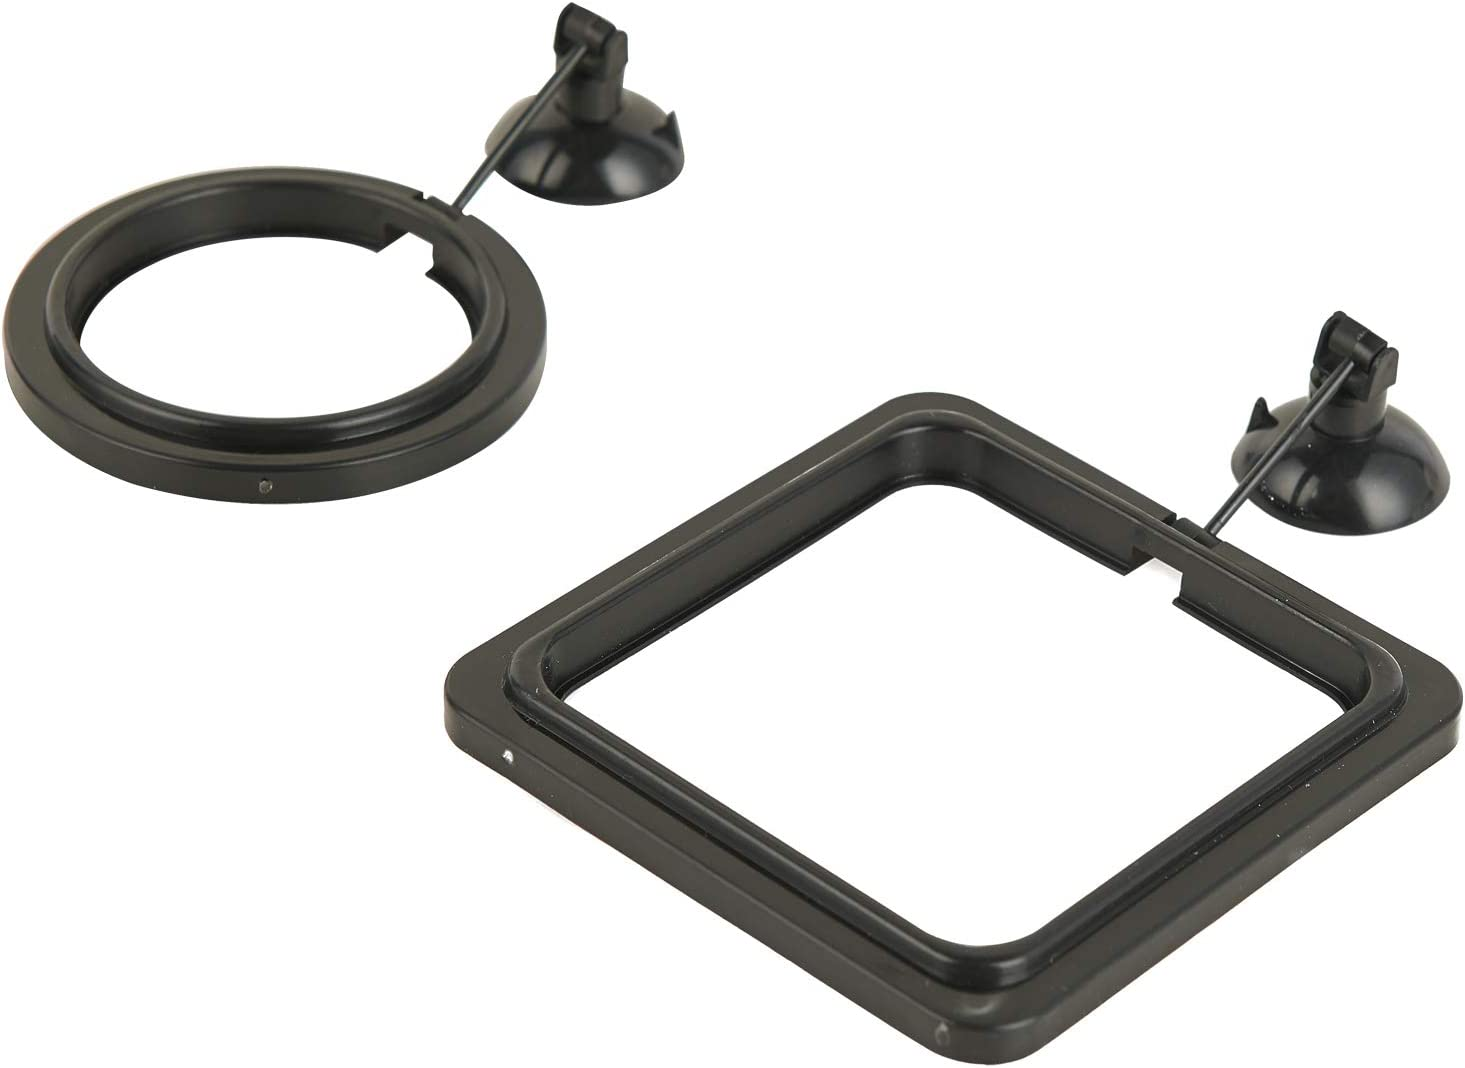 ZRDR Fish Feeding Ring, 2 Pack Black Aquarium Floating Food Feeder Circle Small Round and Square with Flexible Lever Suitable and Suction Cup, Reduces Fish Feeder Waste and Maintains Water Quality